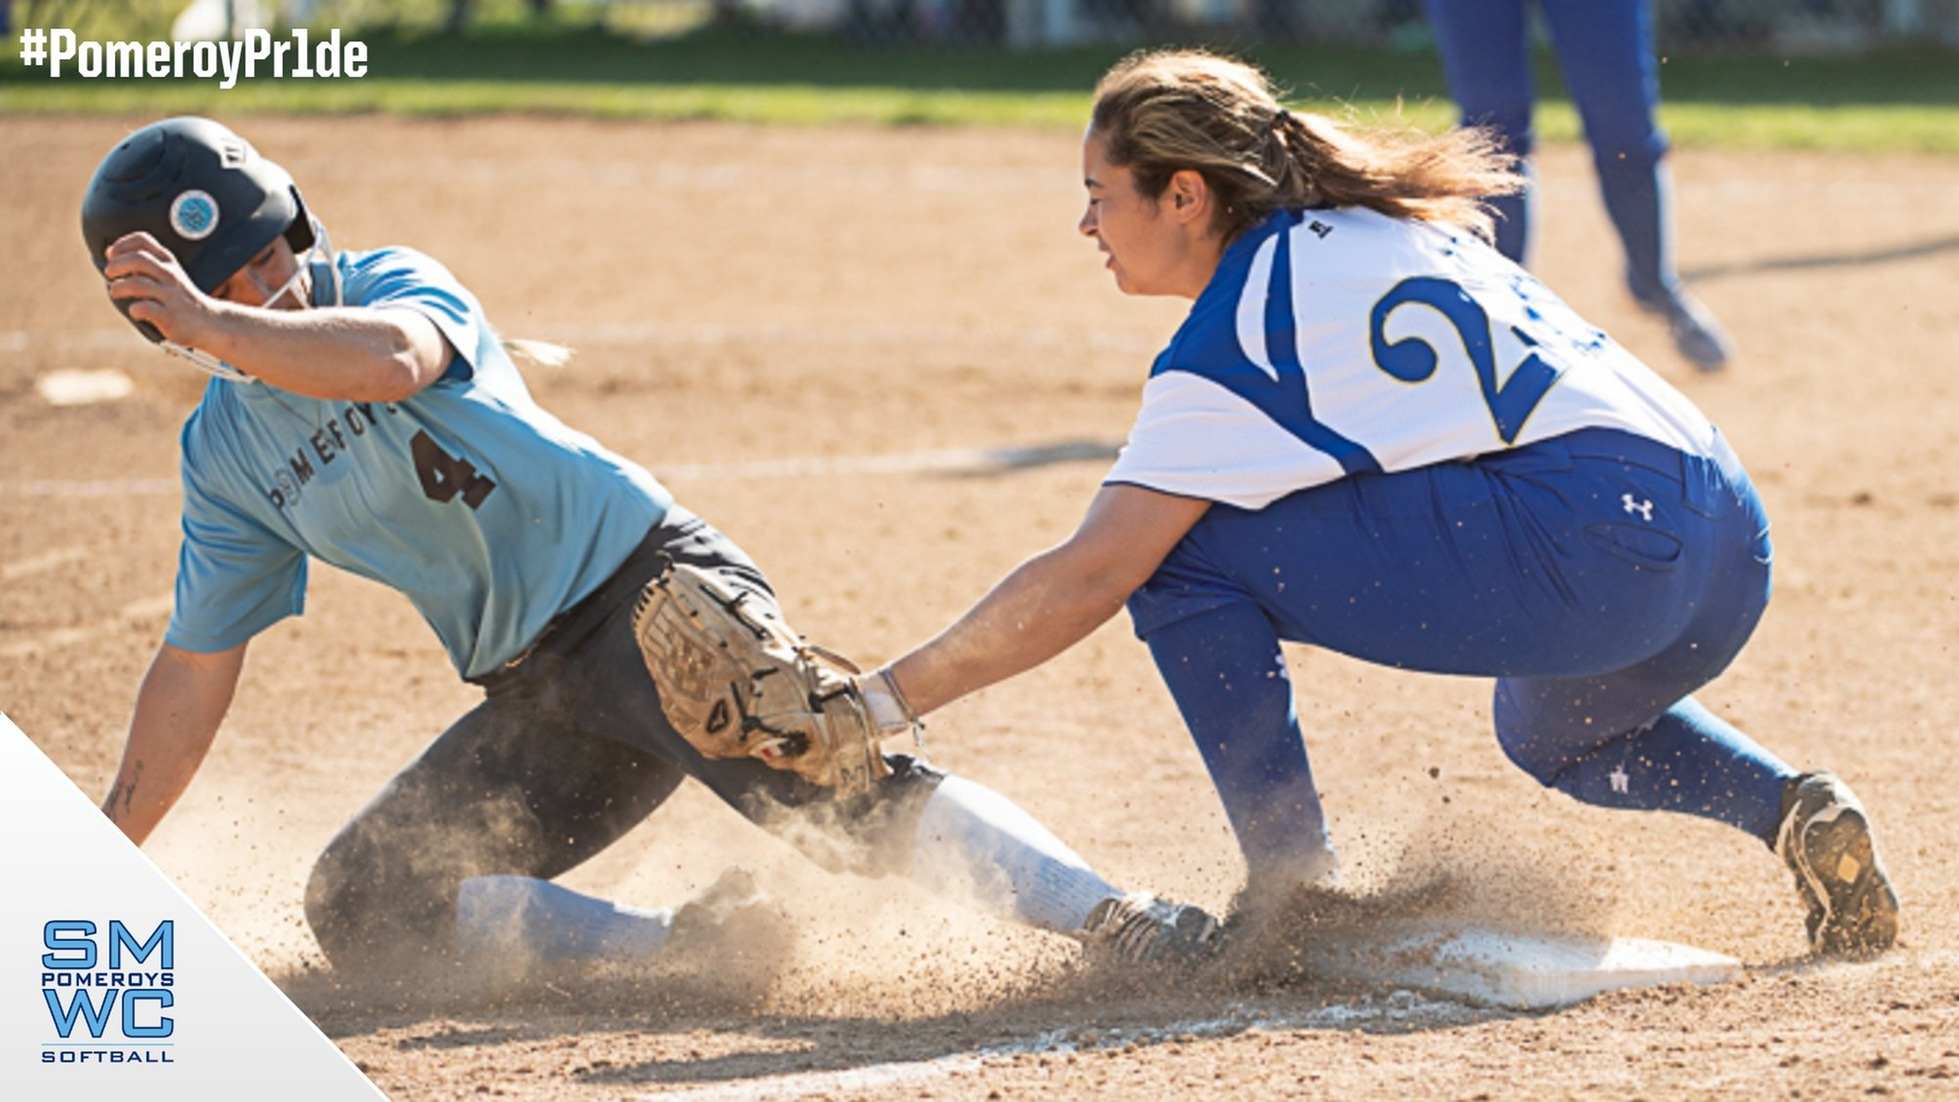 Pomeroys Split with Brescia University; Jones Breaks Career Stolen Base Record